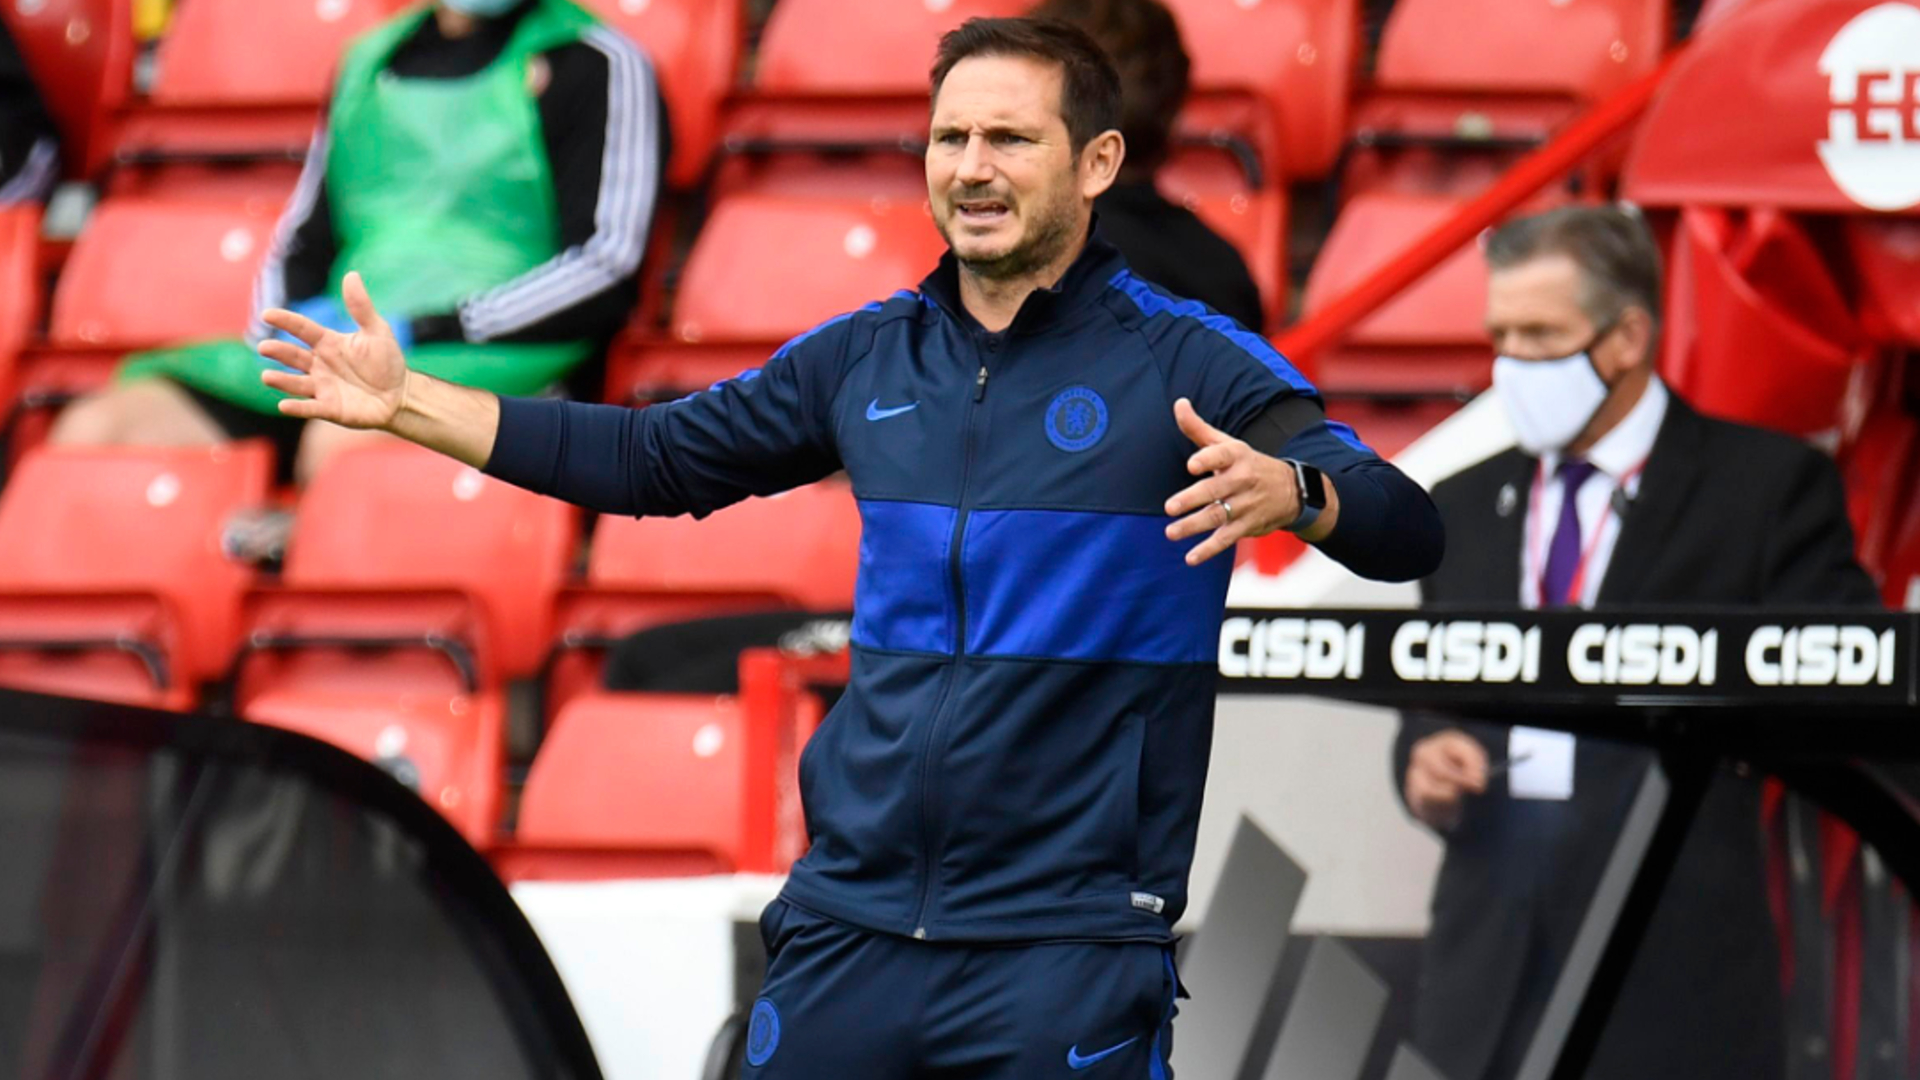 Lampard wants Chelsea stars to make some noise to stop season ending on sour note